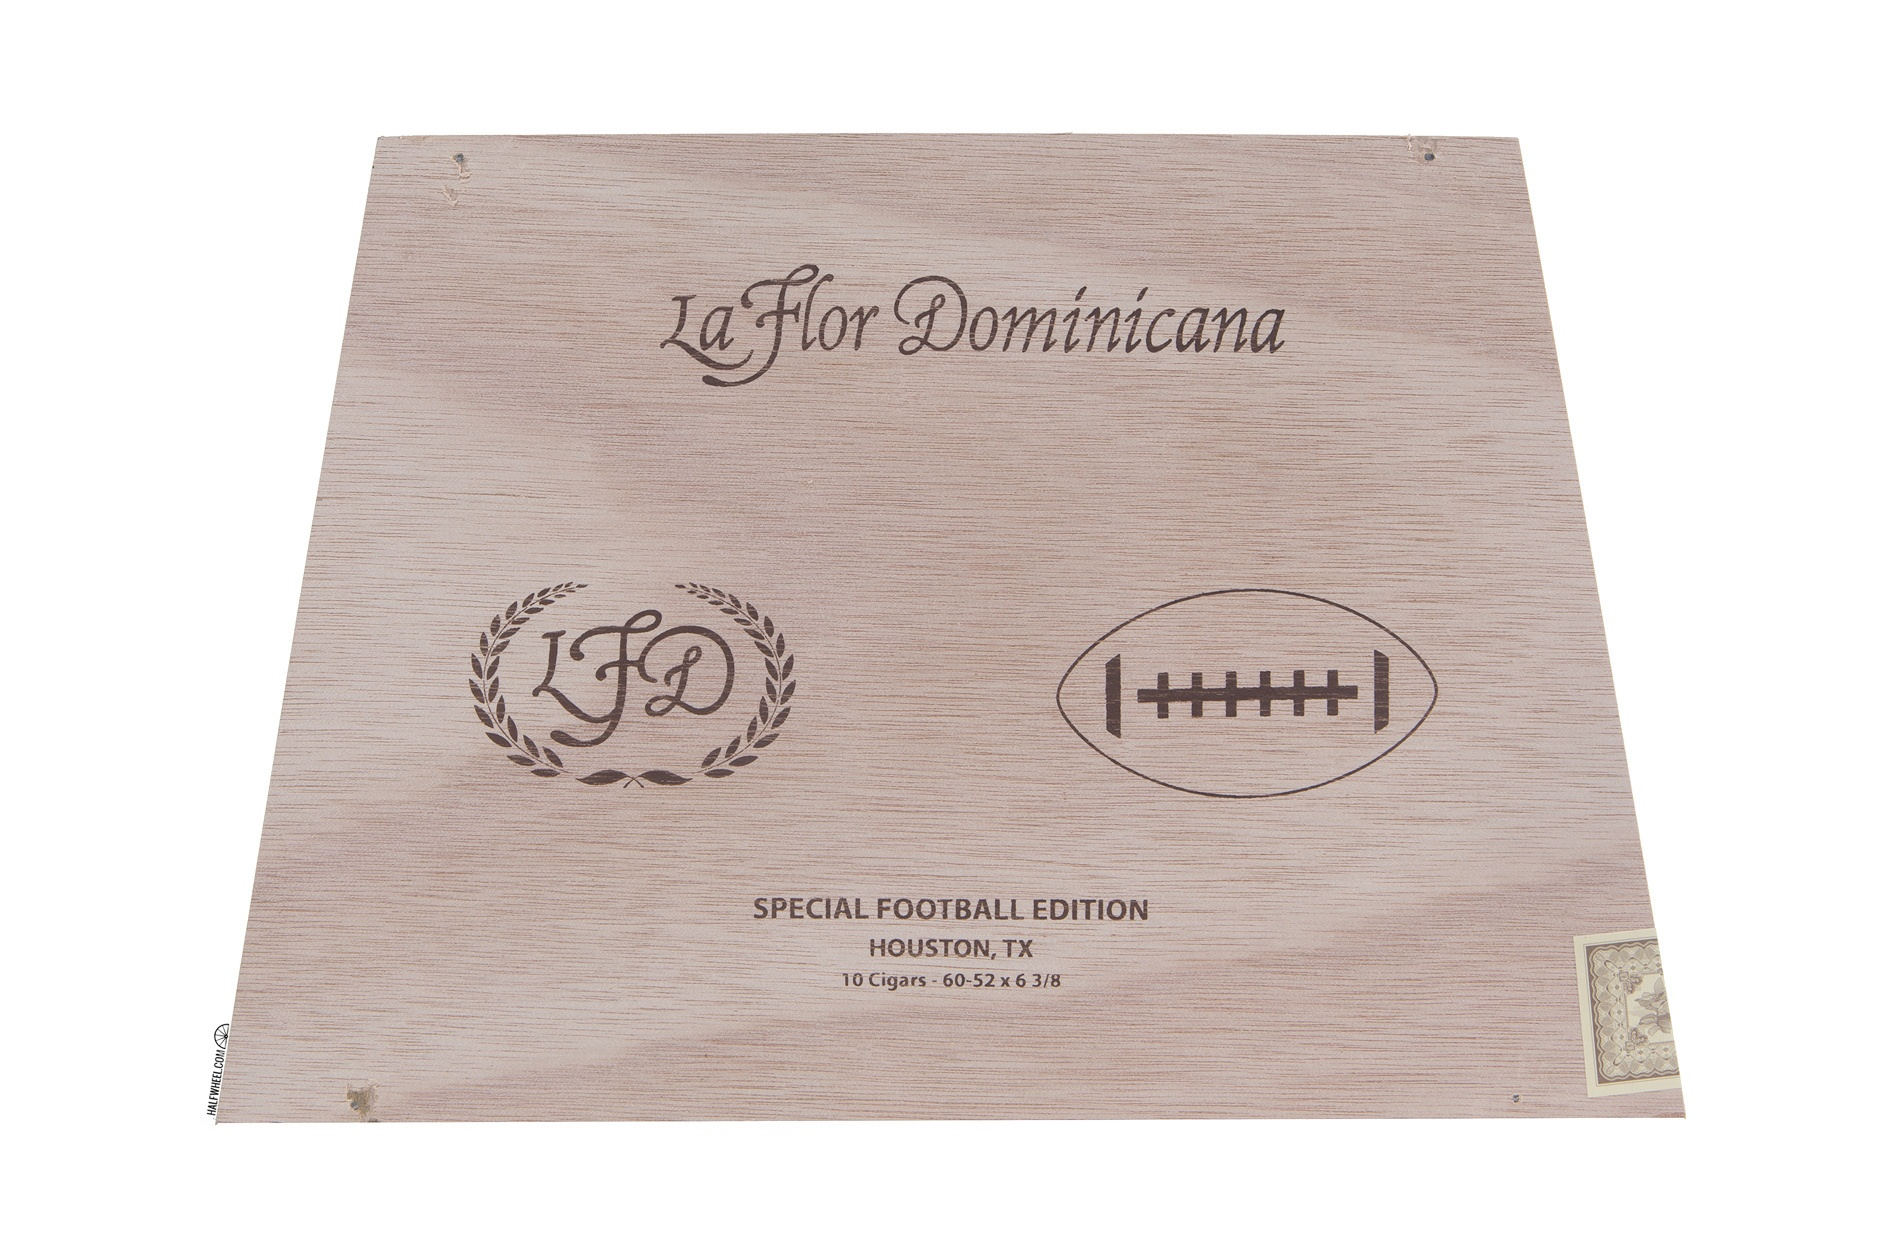 La Flor Dominicana Football Special Edition 2017 Box 1